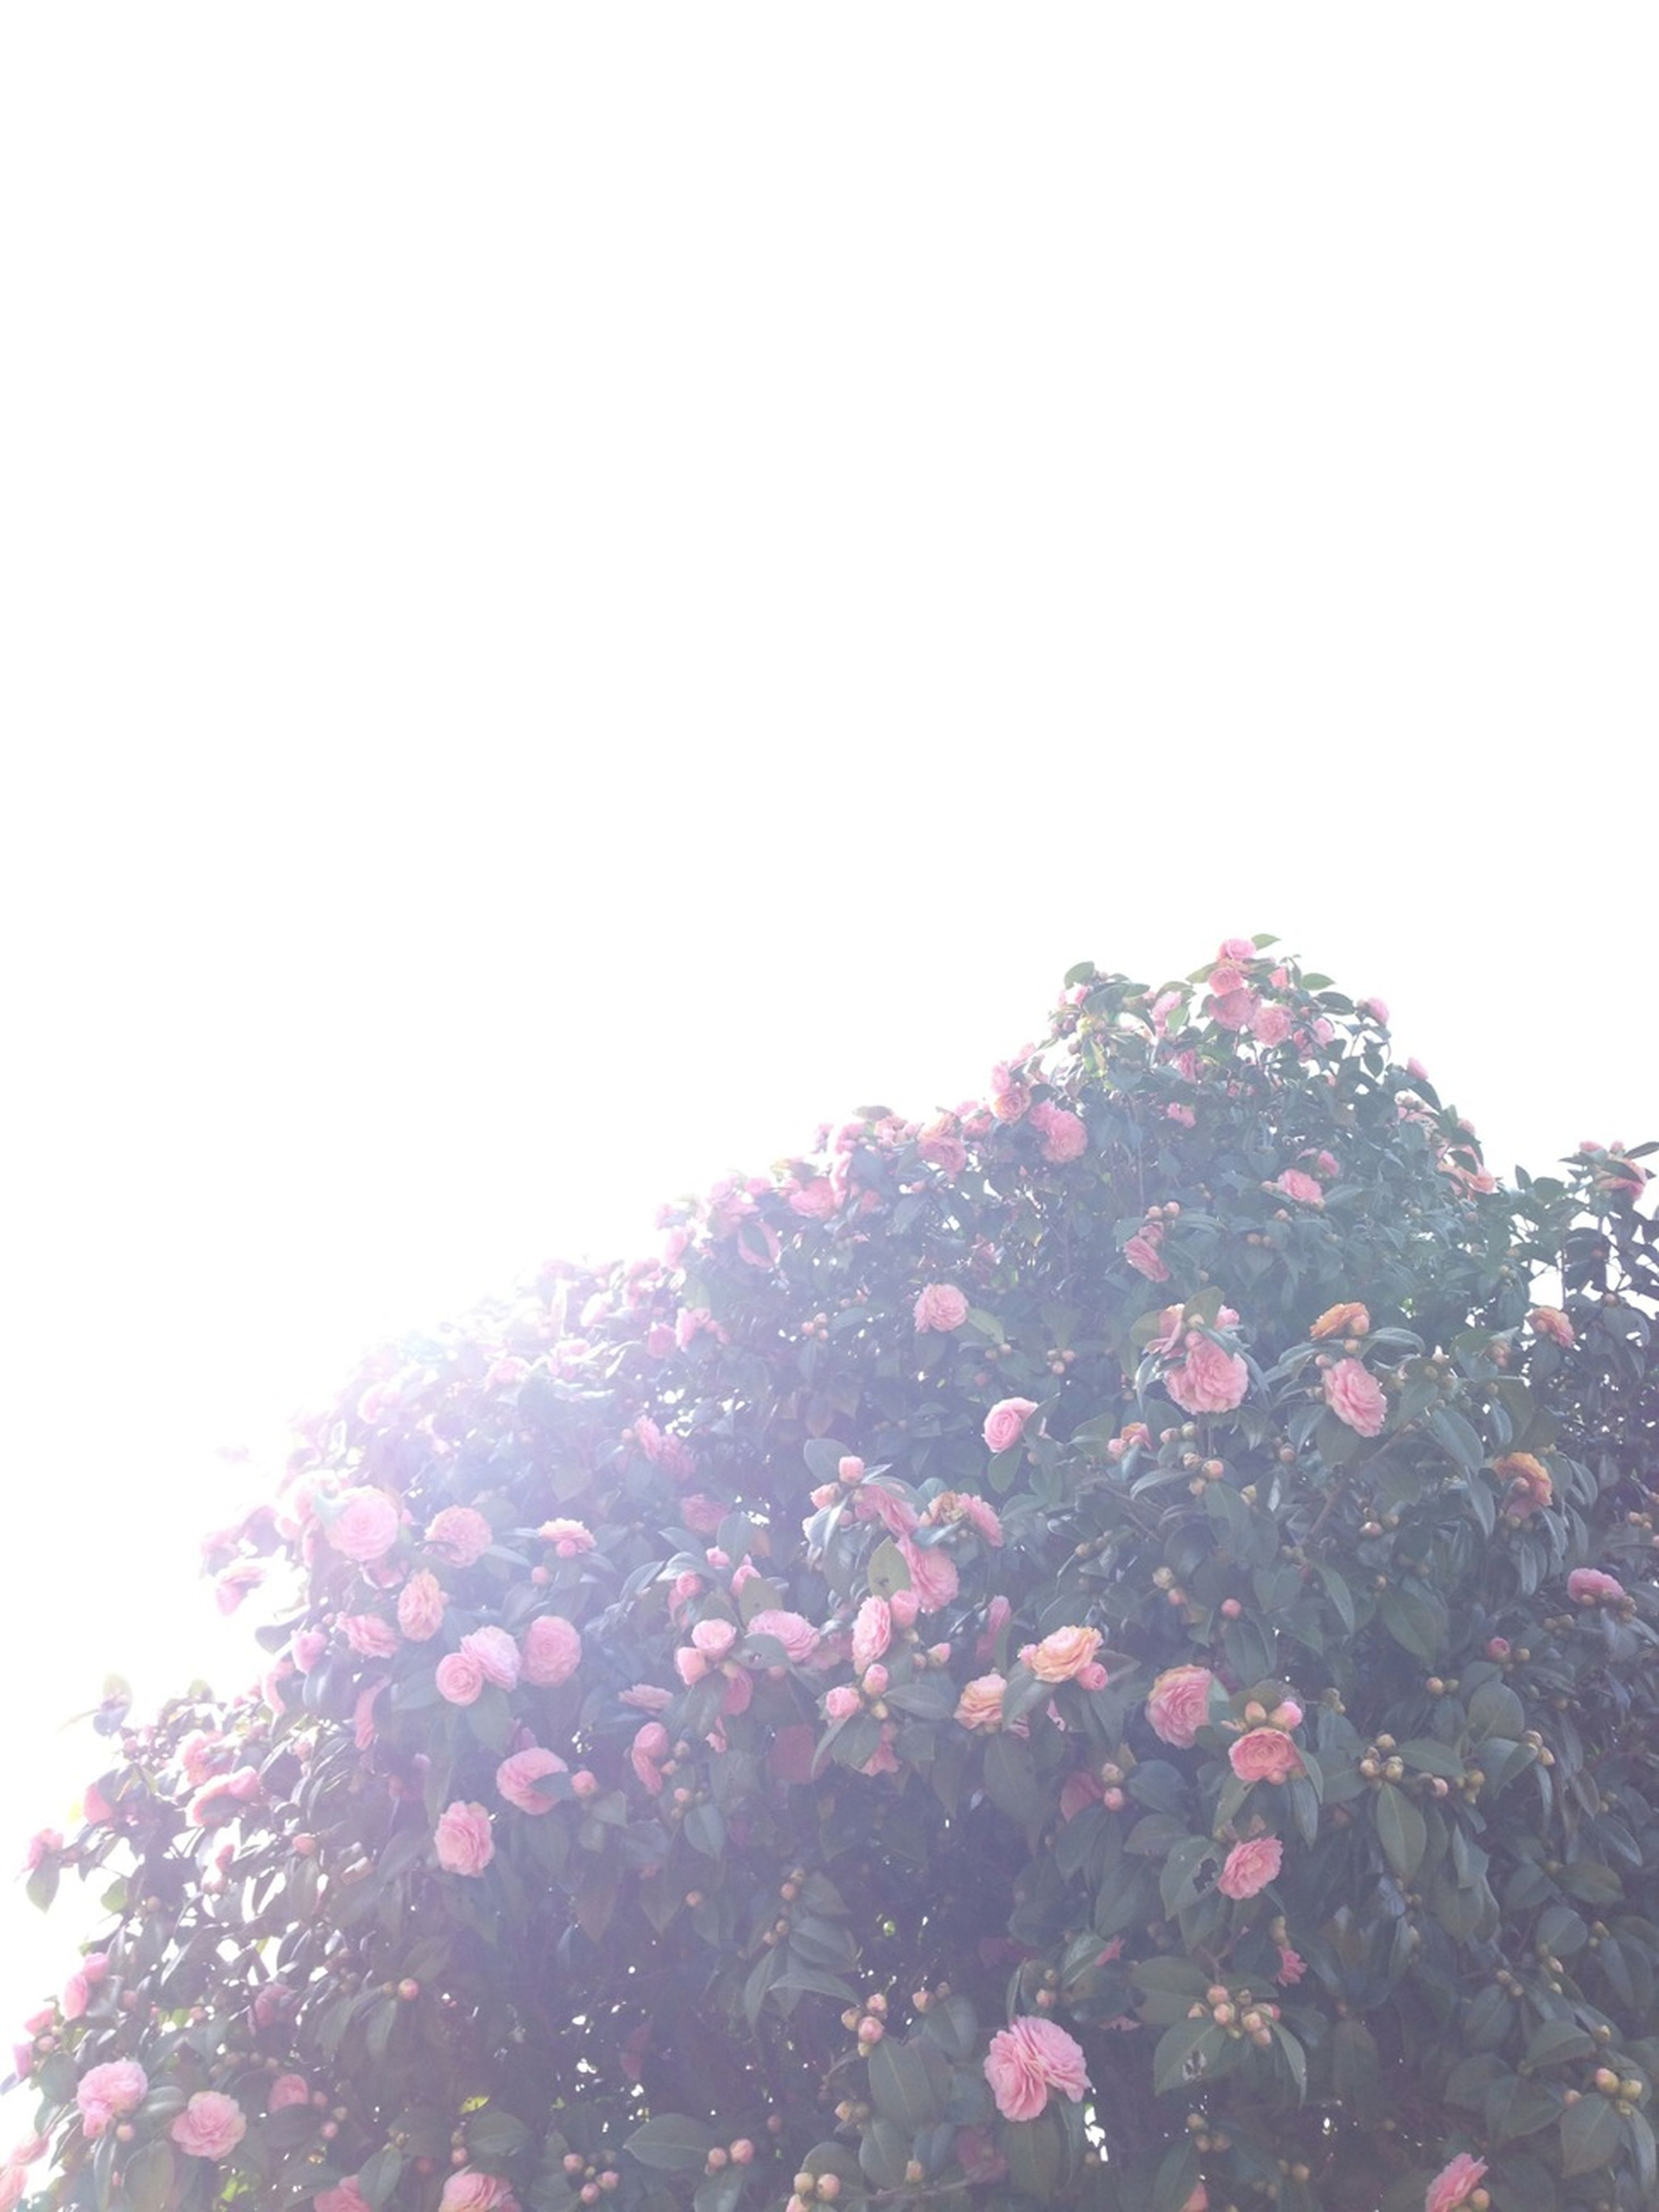 flower, clear sky, beauty in nature, copy space, growth, fragility, freshness, nature, low angle view, petal, blooming, tranquility, tree, sunlight, pink color, plant, outdoors, sun, sky, in bloom